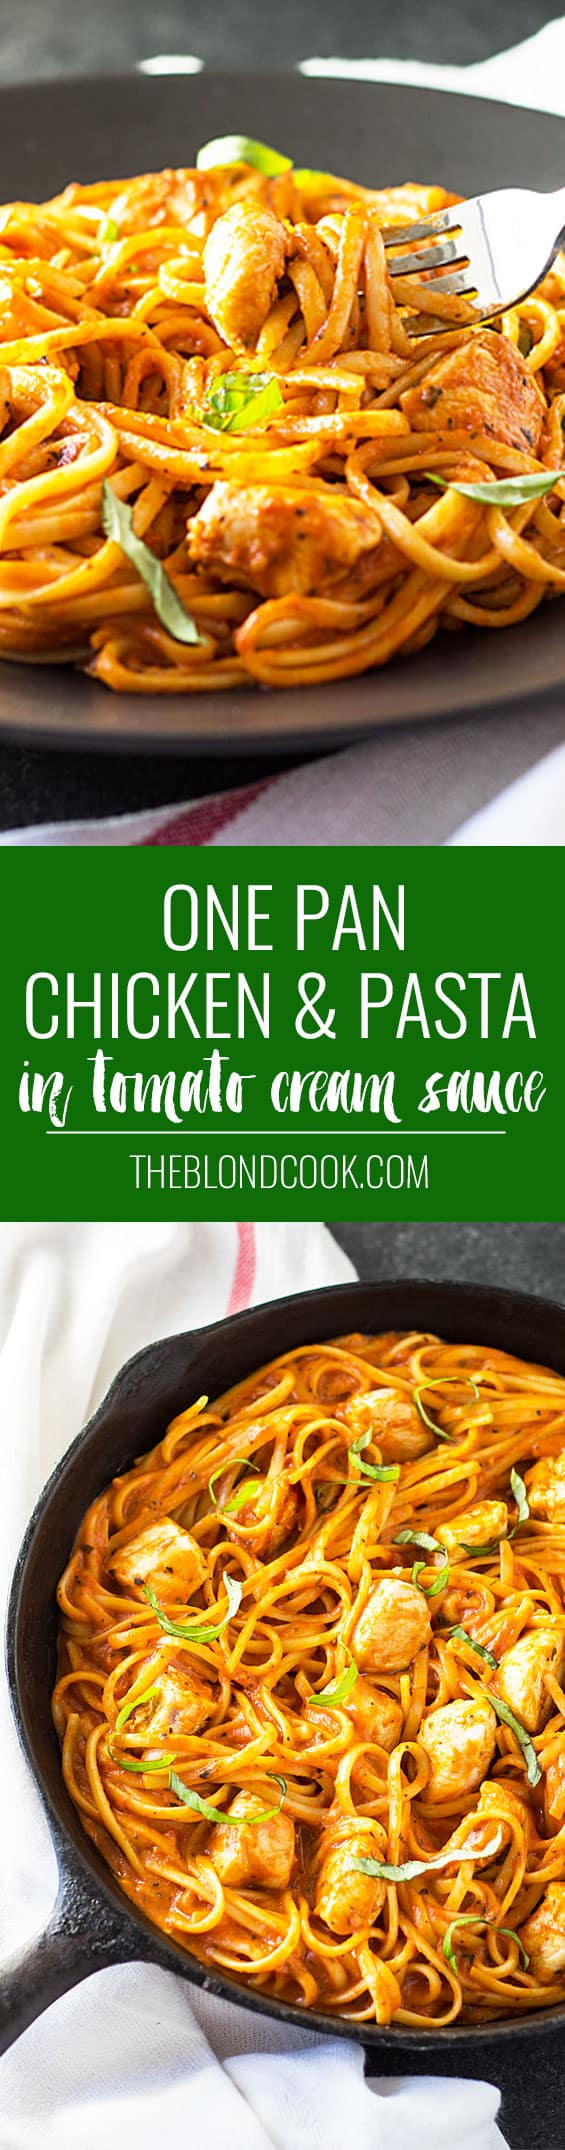 One Pan Chicken & Pasta in Tomato Cream Sauce - The easiest, most flavorful creamy chicken pasta dish that comes together in just 30 minutes!